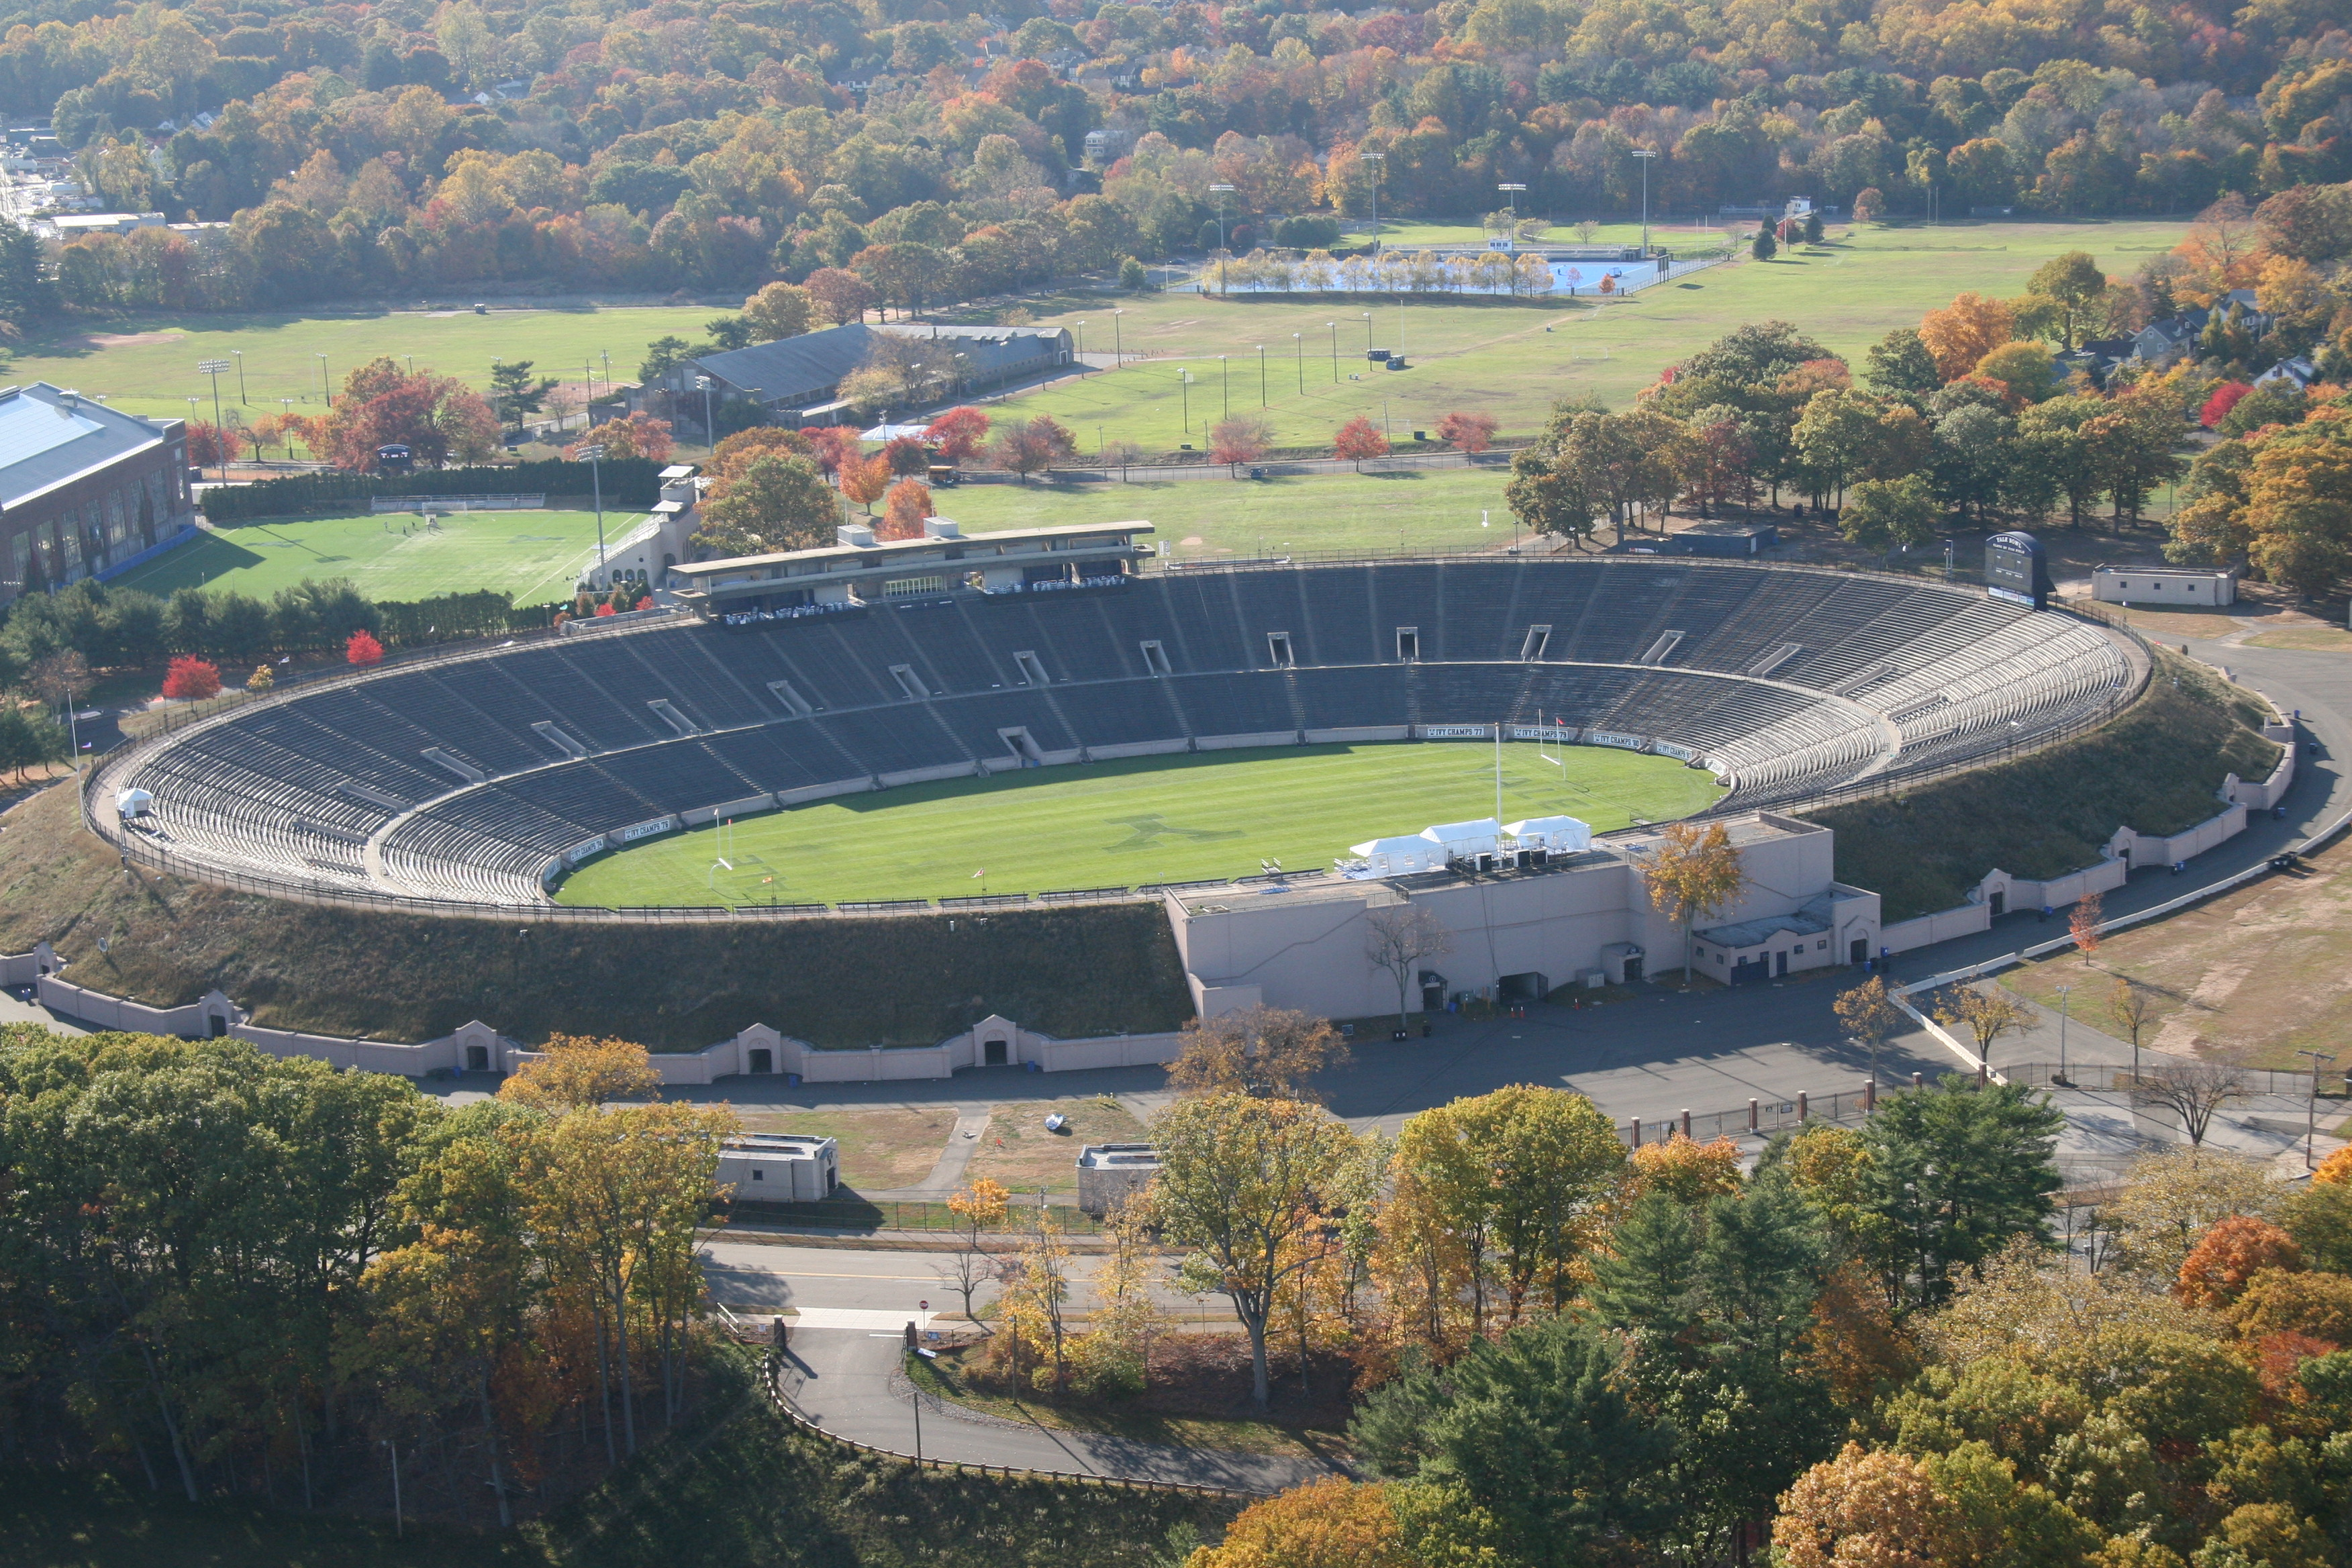 This aerial photo of the Yale Bowl was taken in 2014 as part of the celebration of this historic stadium's 100-year birthday.